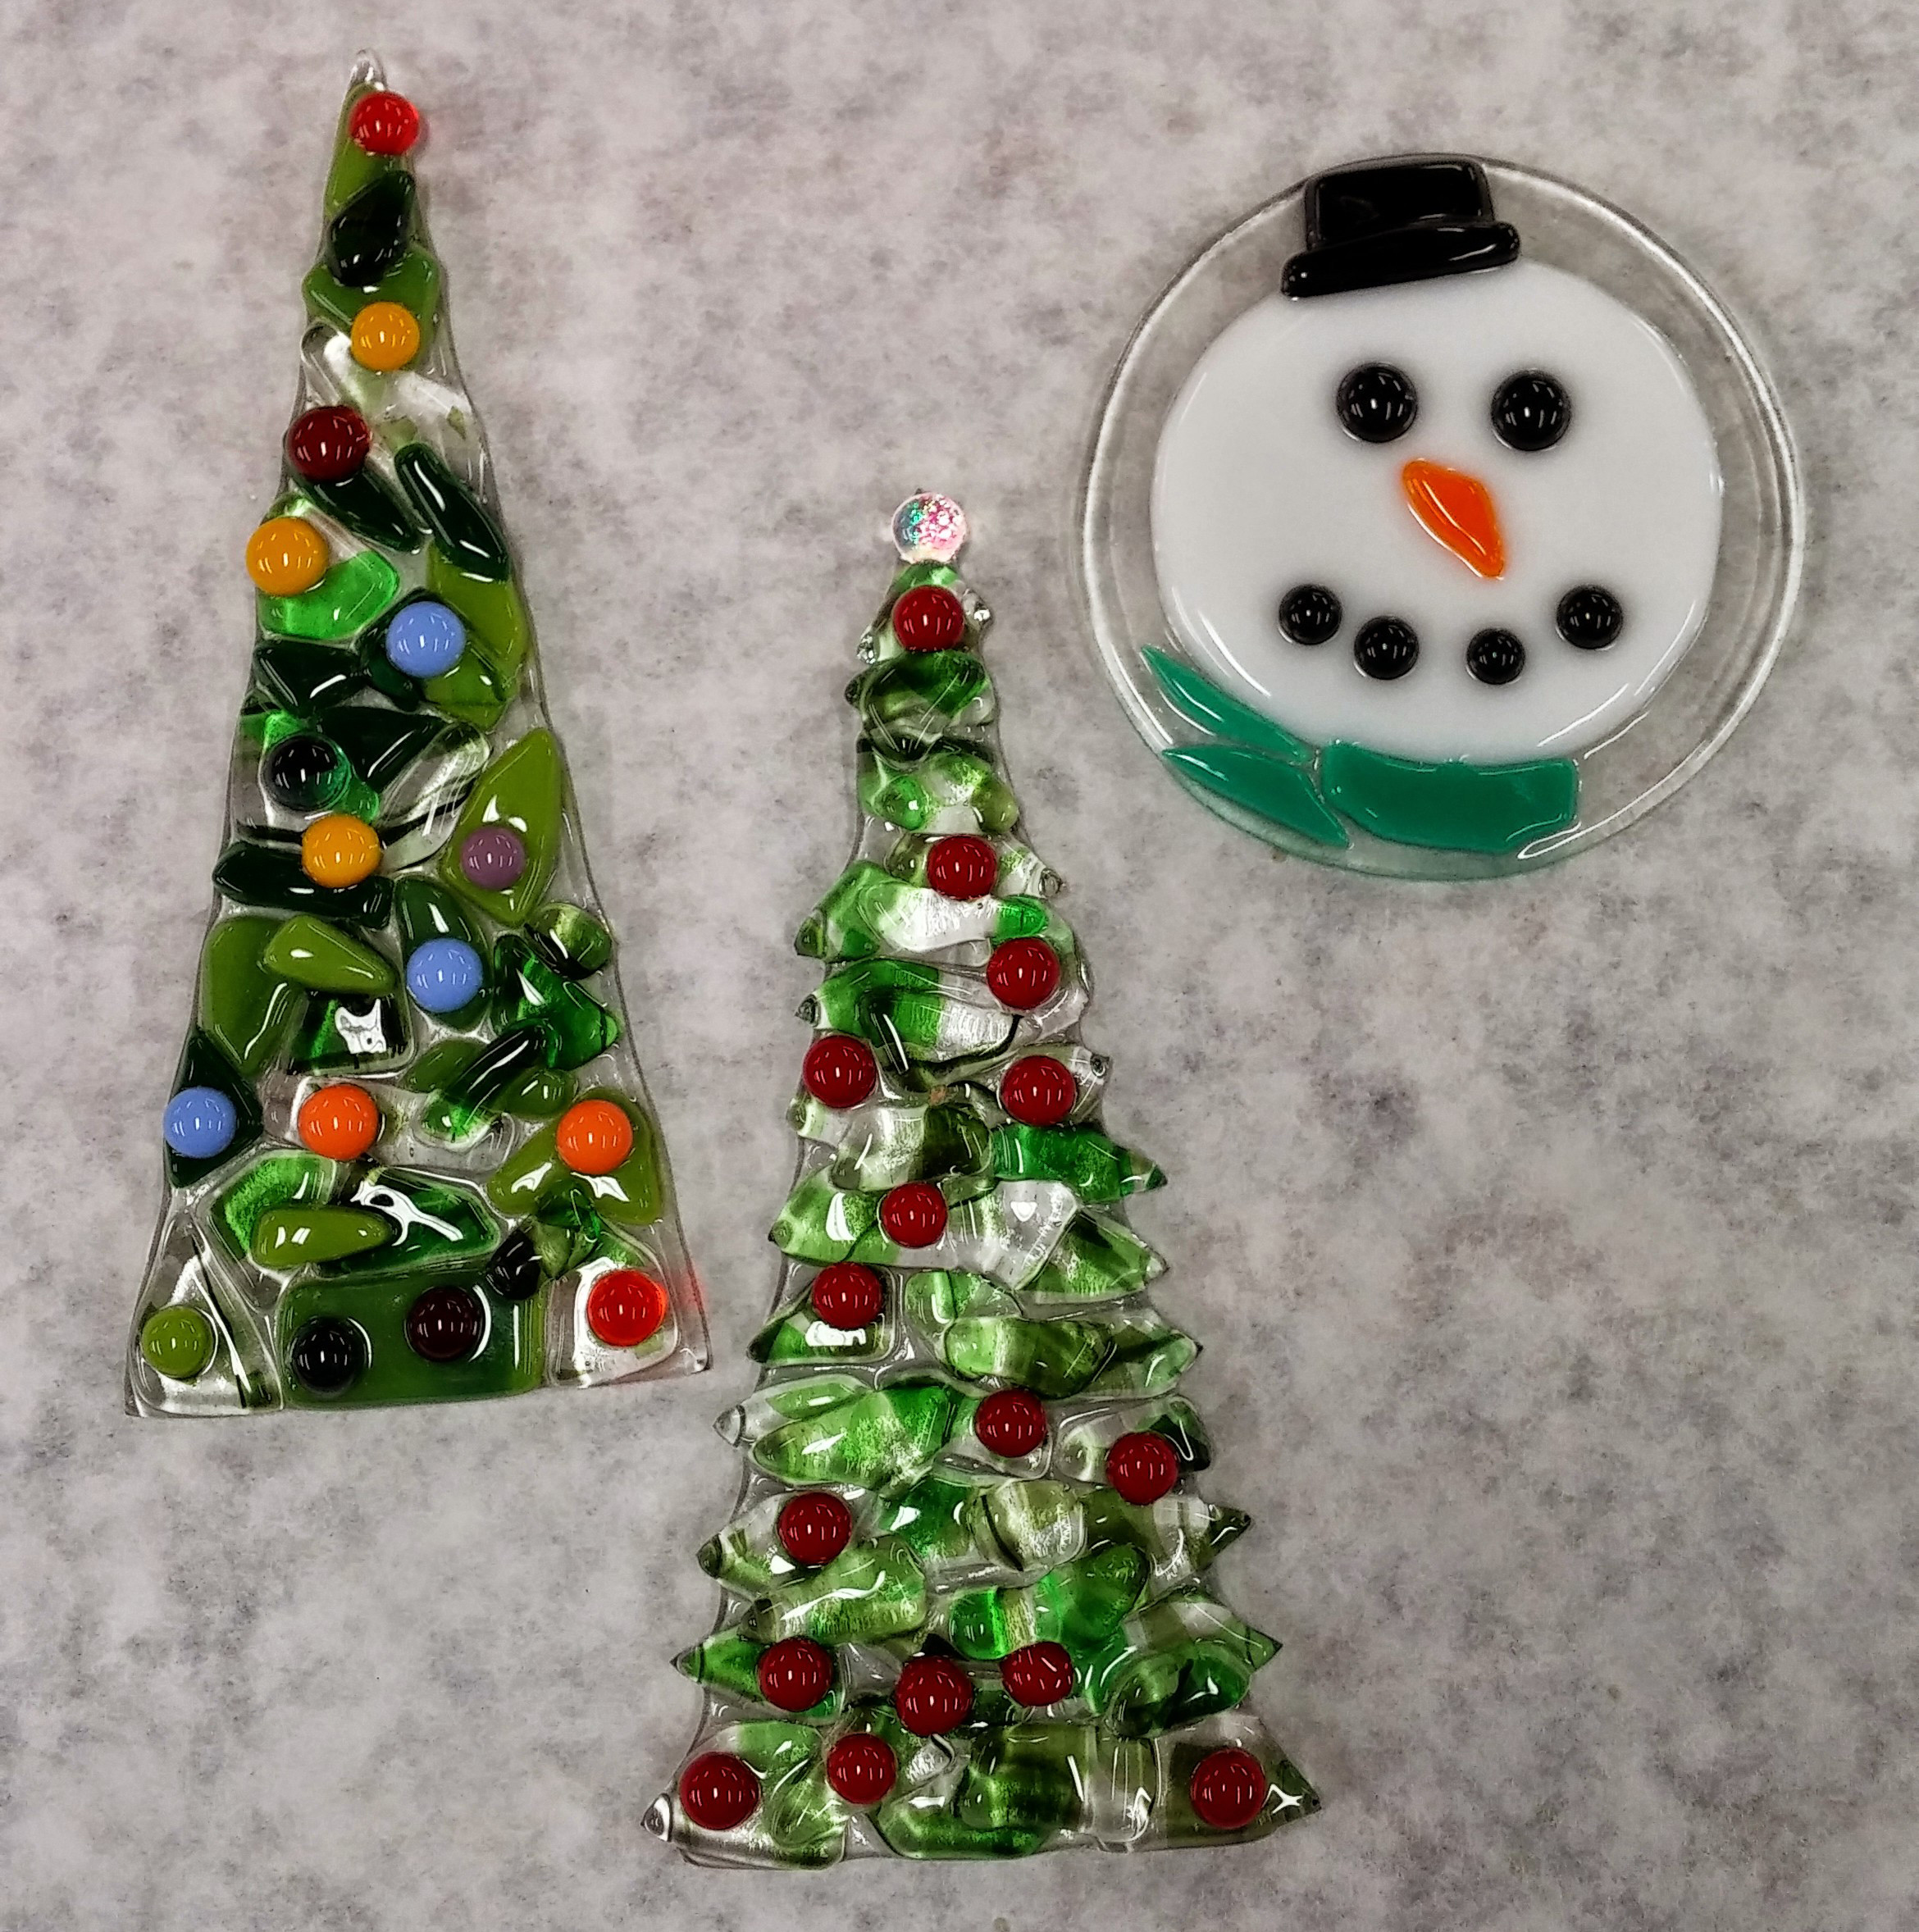 Fused glass ornaments class project examples.